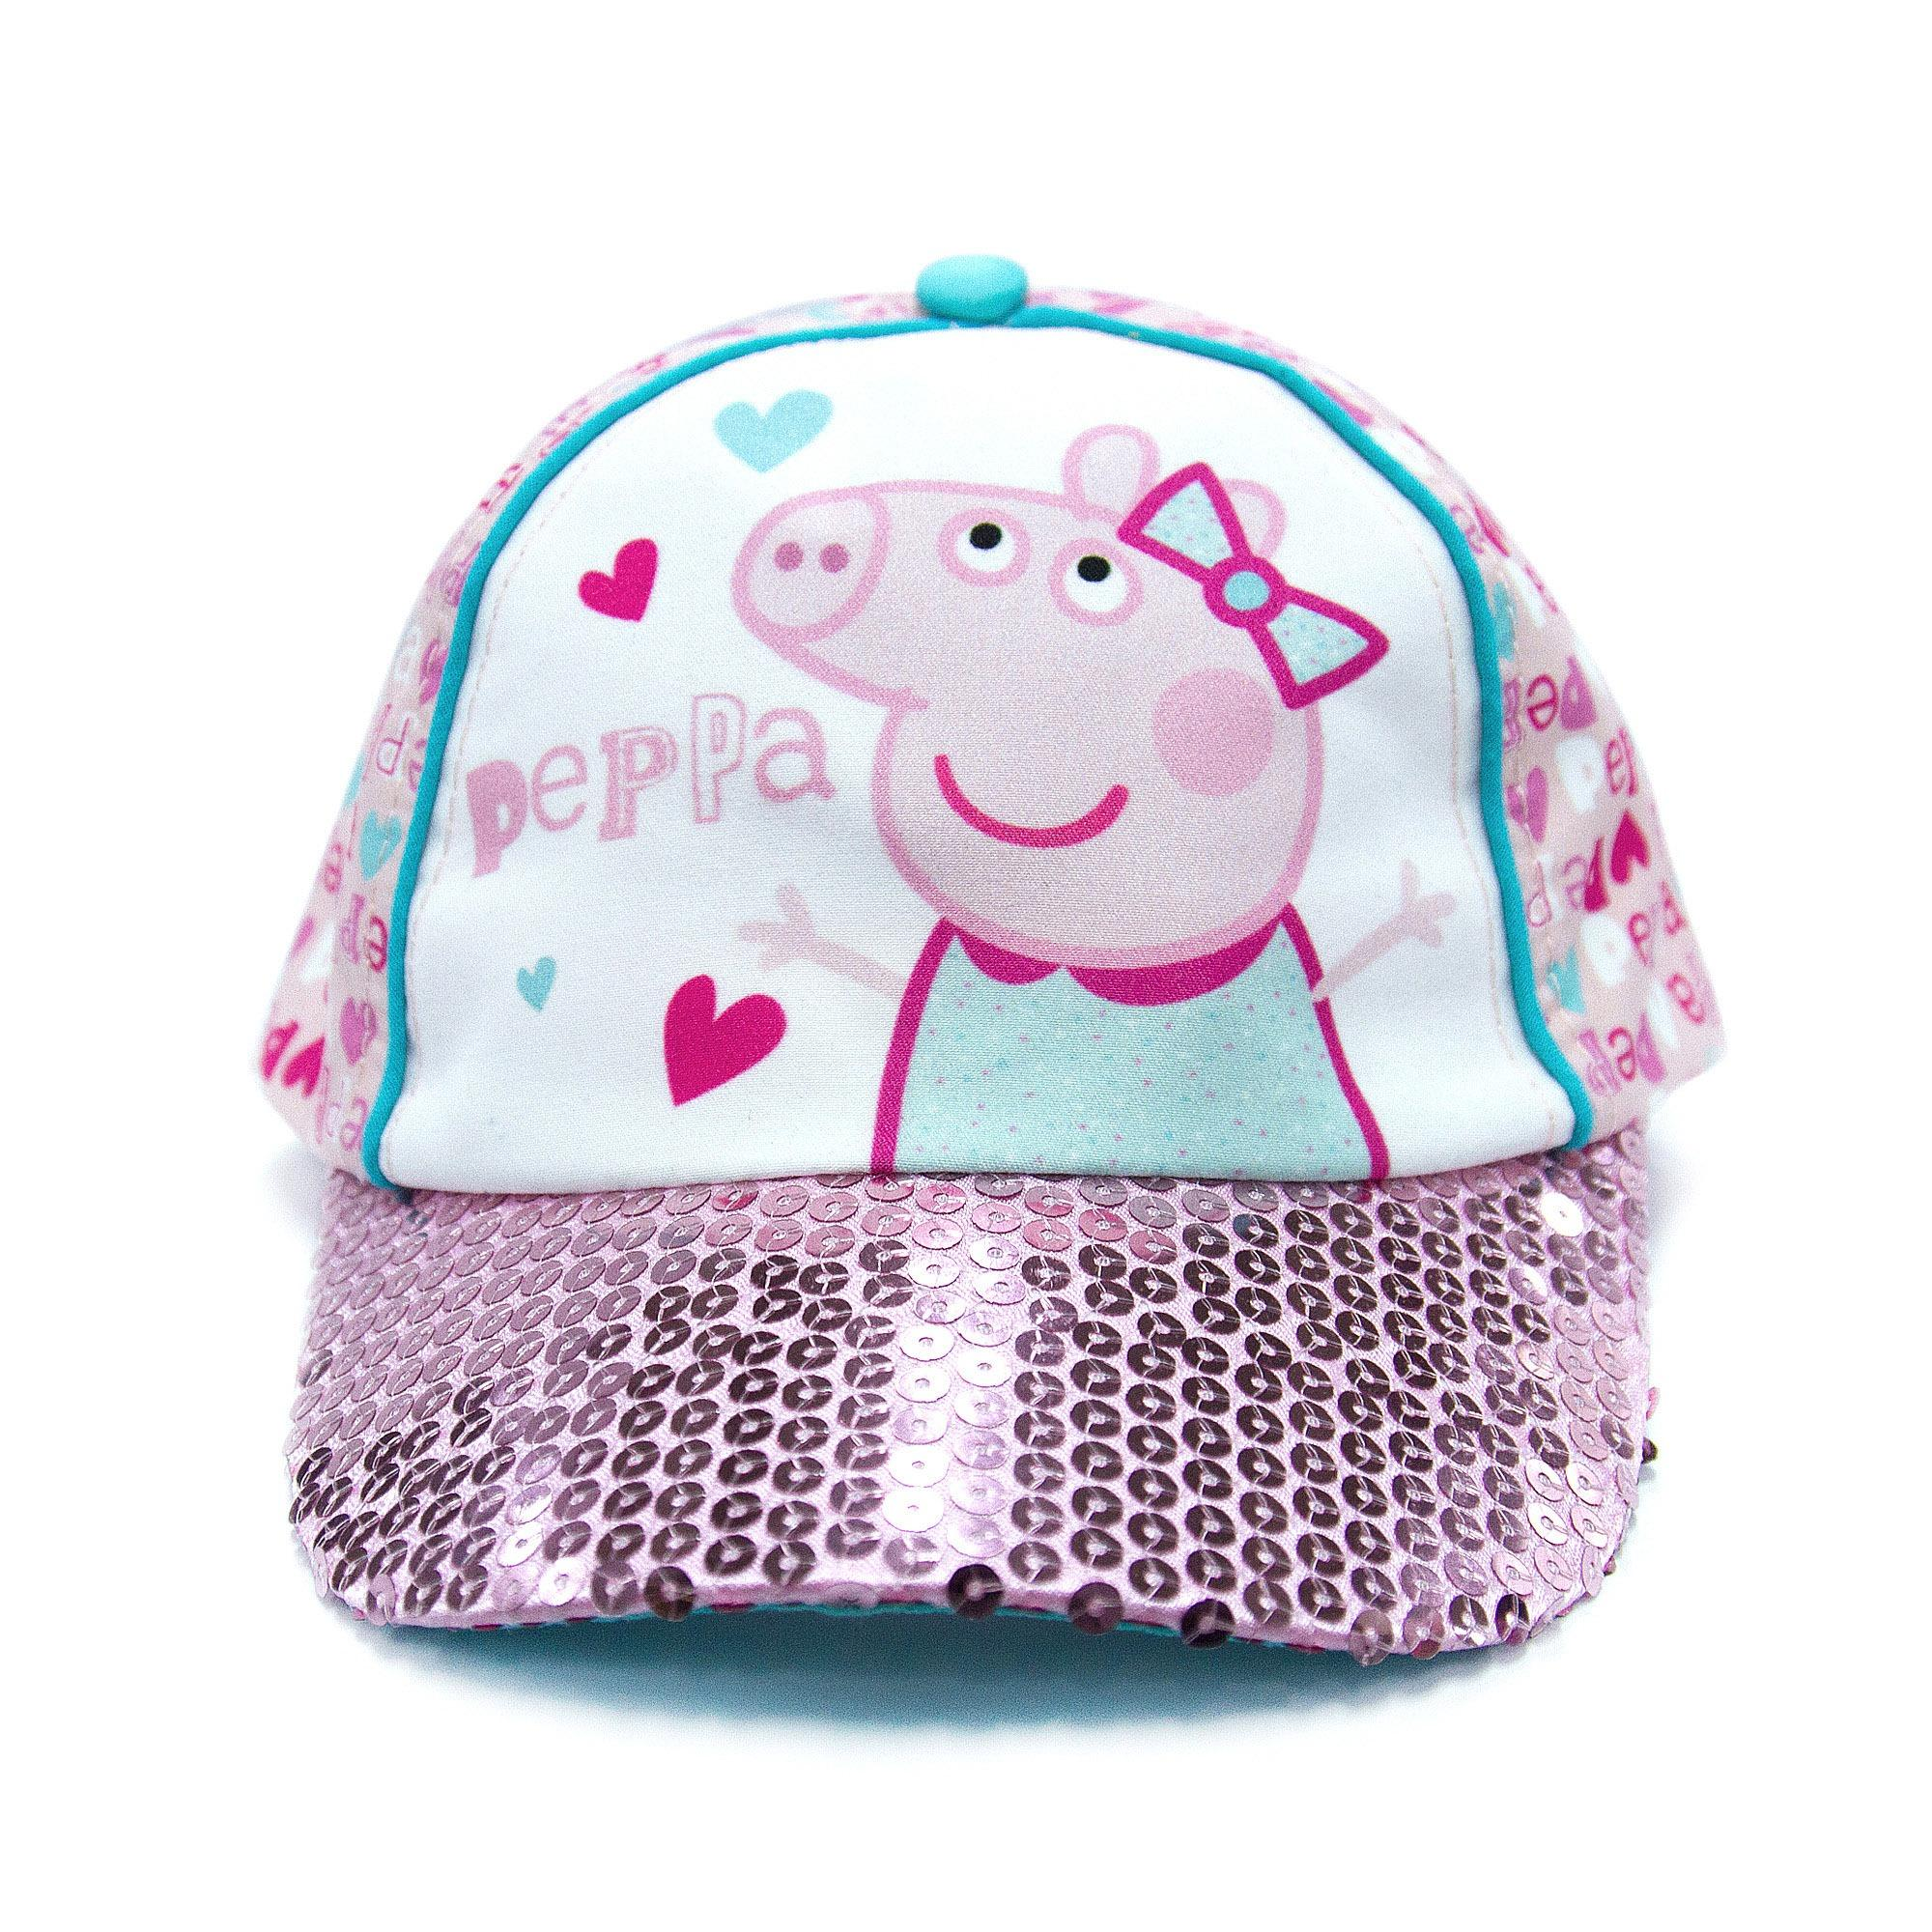 689e6093d1e78 Peppa Pig Philippines - Peppa Pig Hats   Caps for Baby Girls for ...